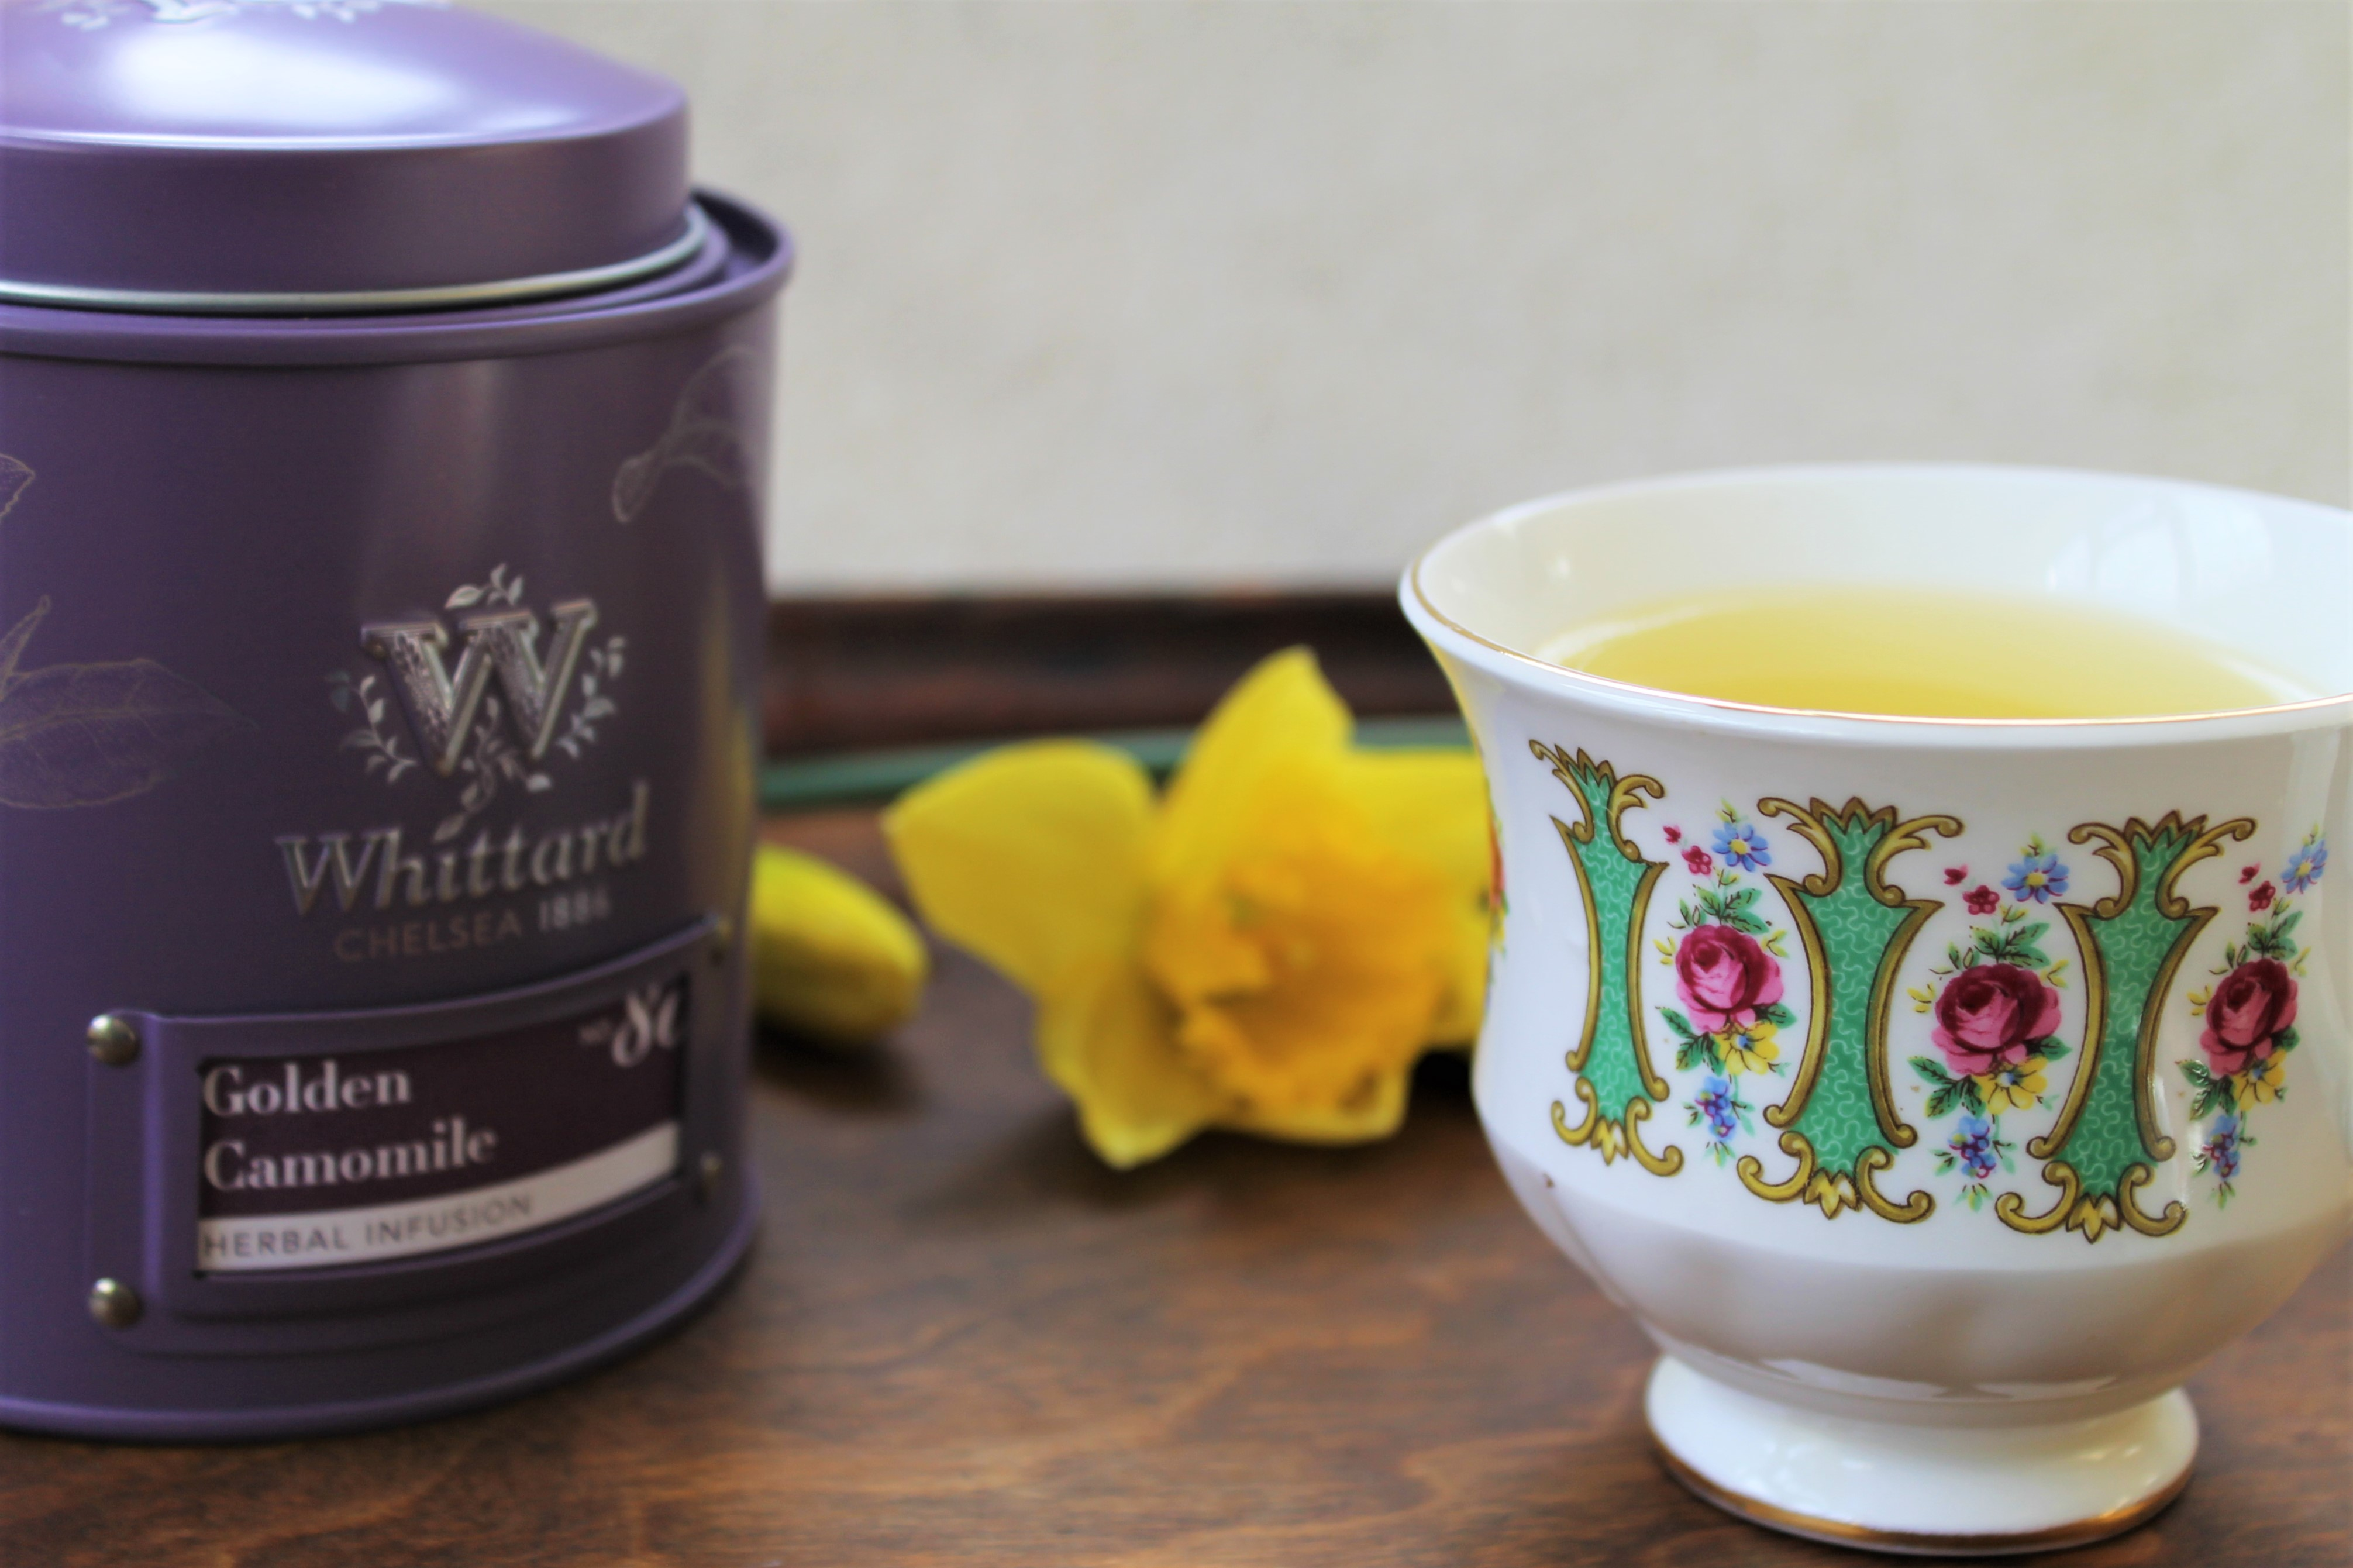 Whittard Chamomile Tea Review